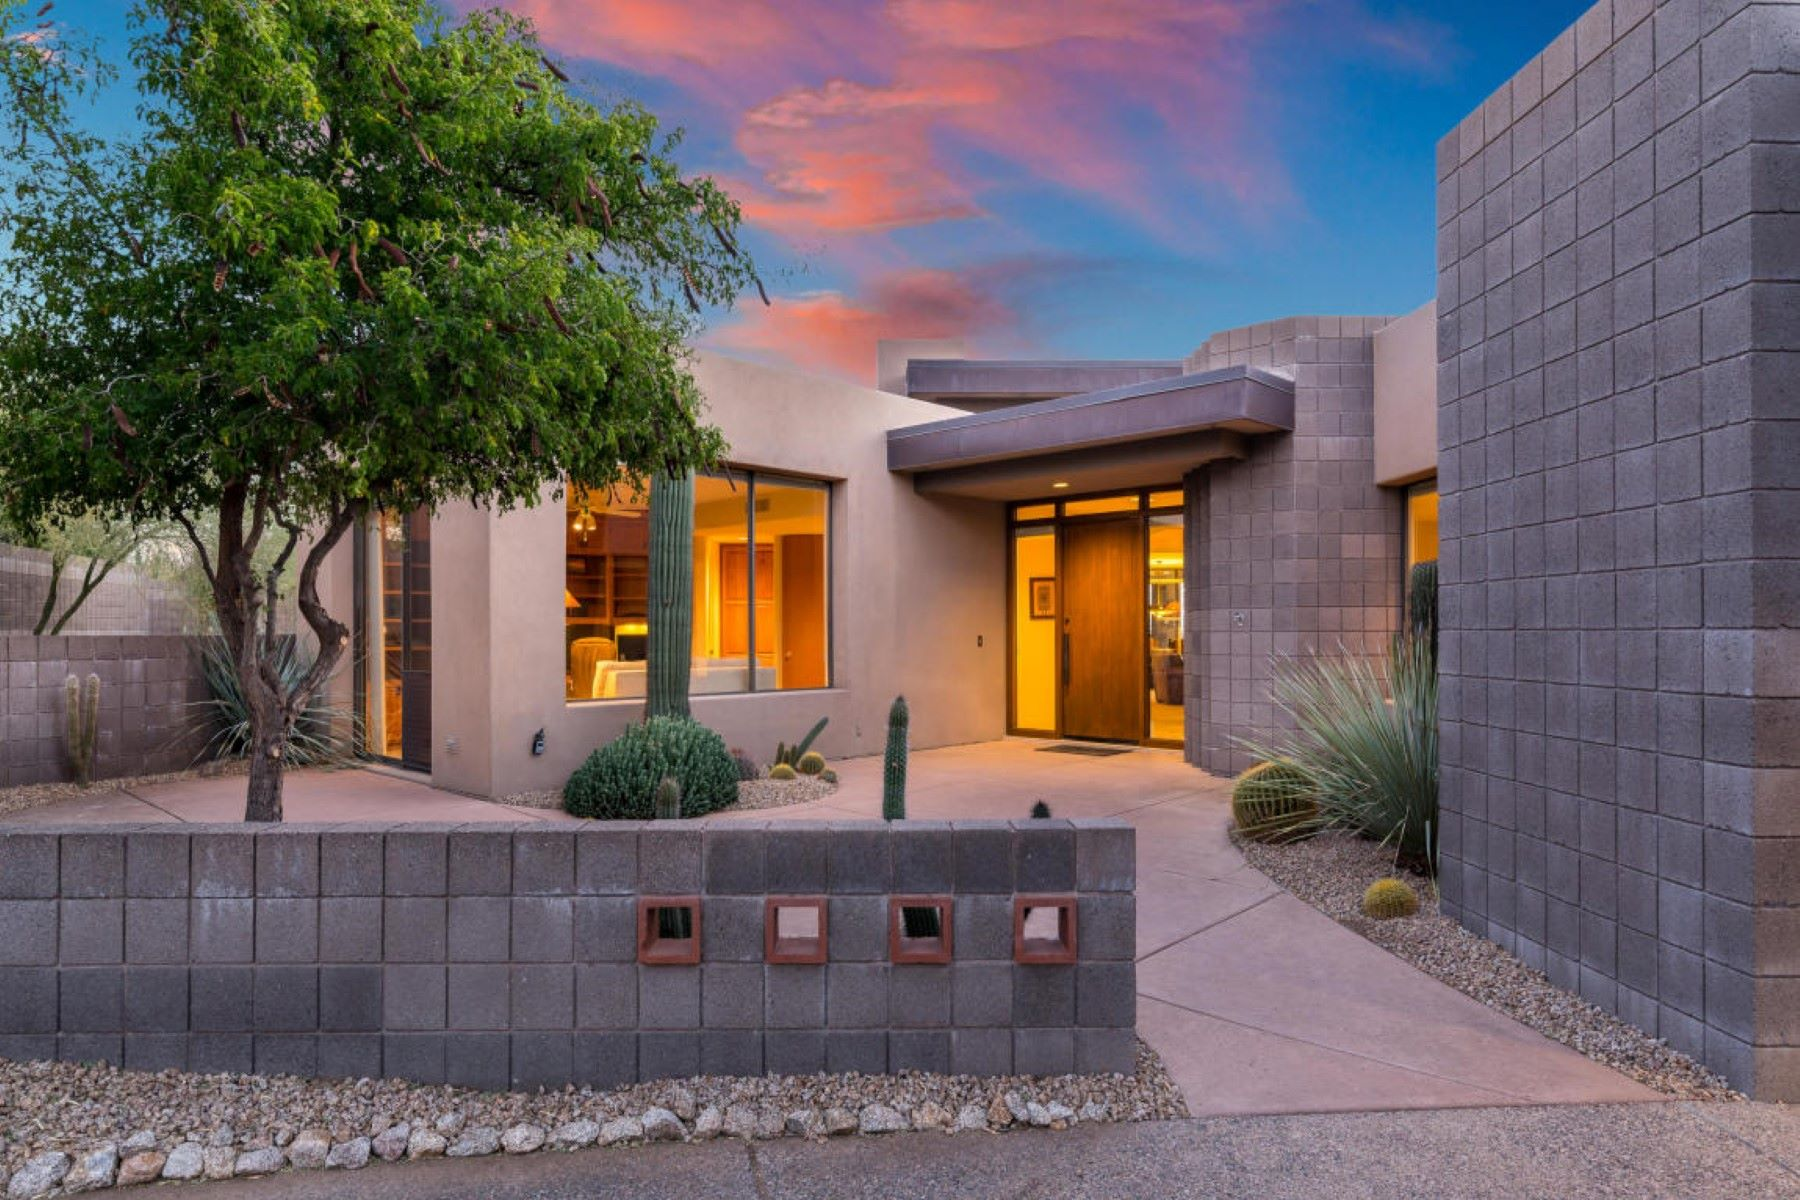 Single Family Home for Sale at Marvelous Desert Contemporary with Views 39354 N 107th Way, Scottsdale, Arizona, 85262 United States